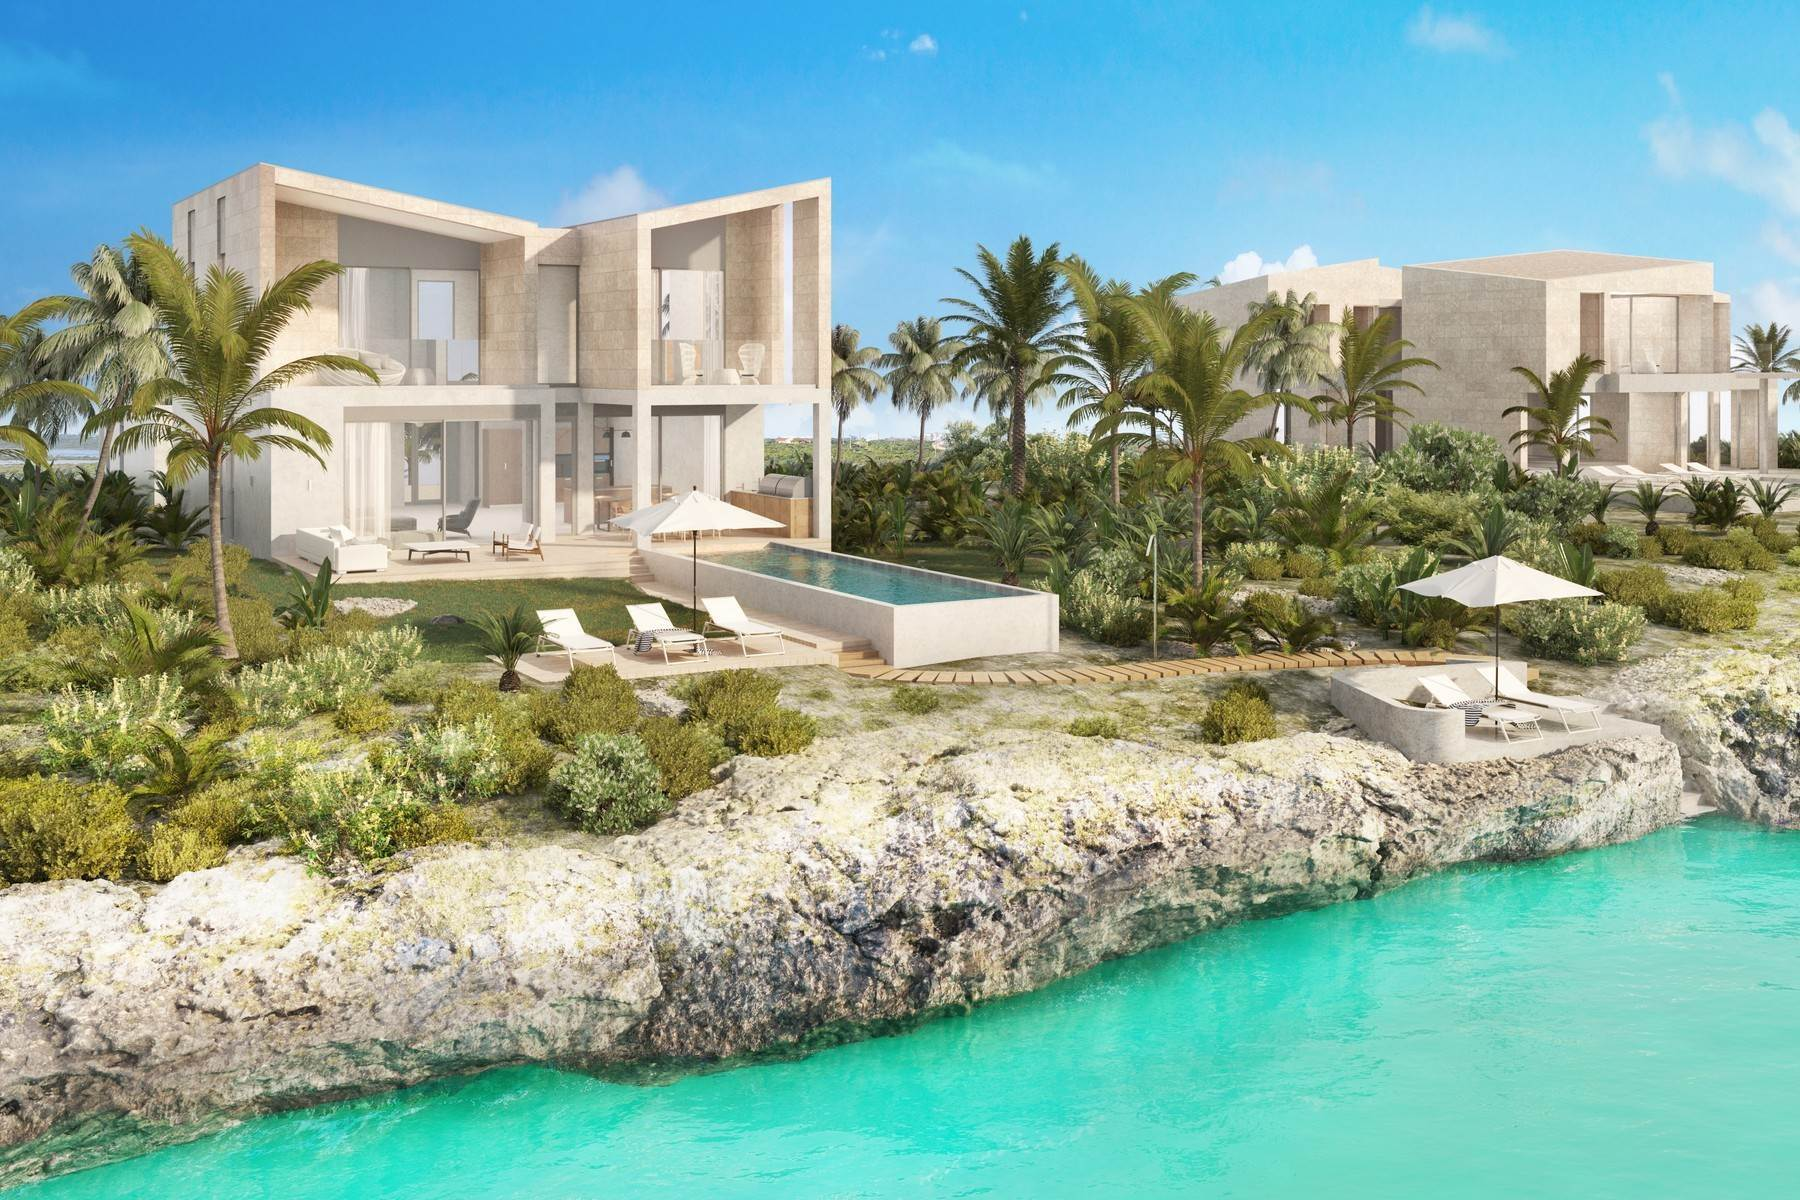 Single Family Homes for Sale at SOUTH BANK - THE OCEAN ESTATE II - REEF VILLA - VILLA 9 South Bank, Long Bay, Providenciales Turks And Caicos Islands